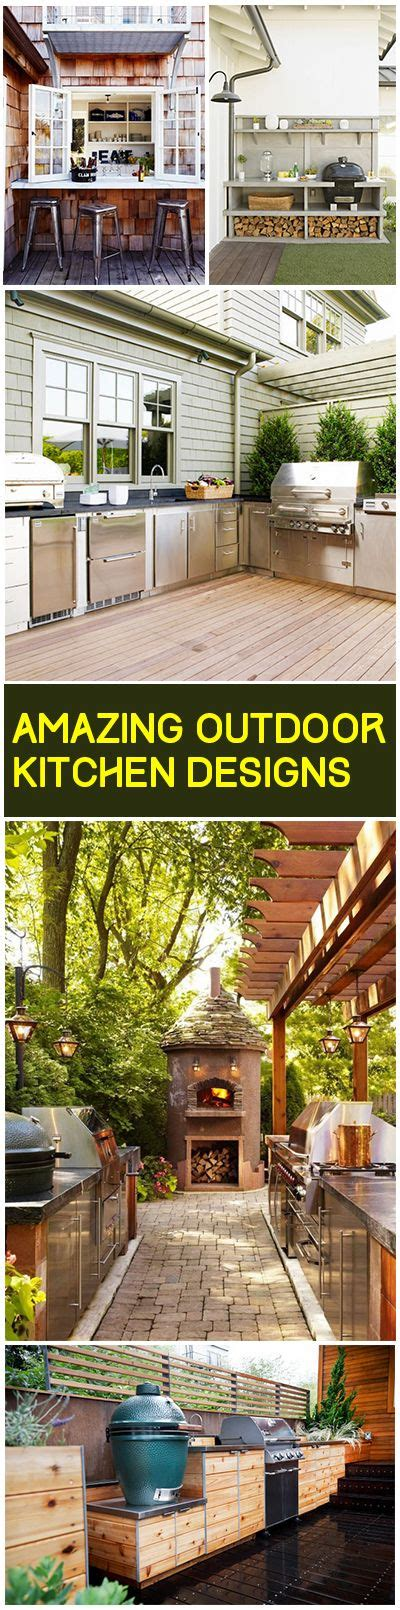 kitchen layout design 325 best images about garden whimsy on 2130